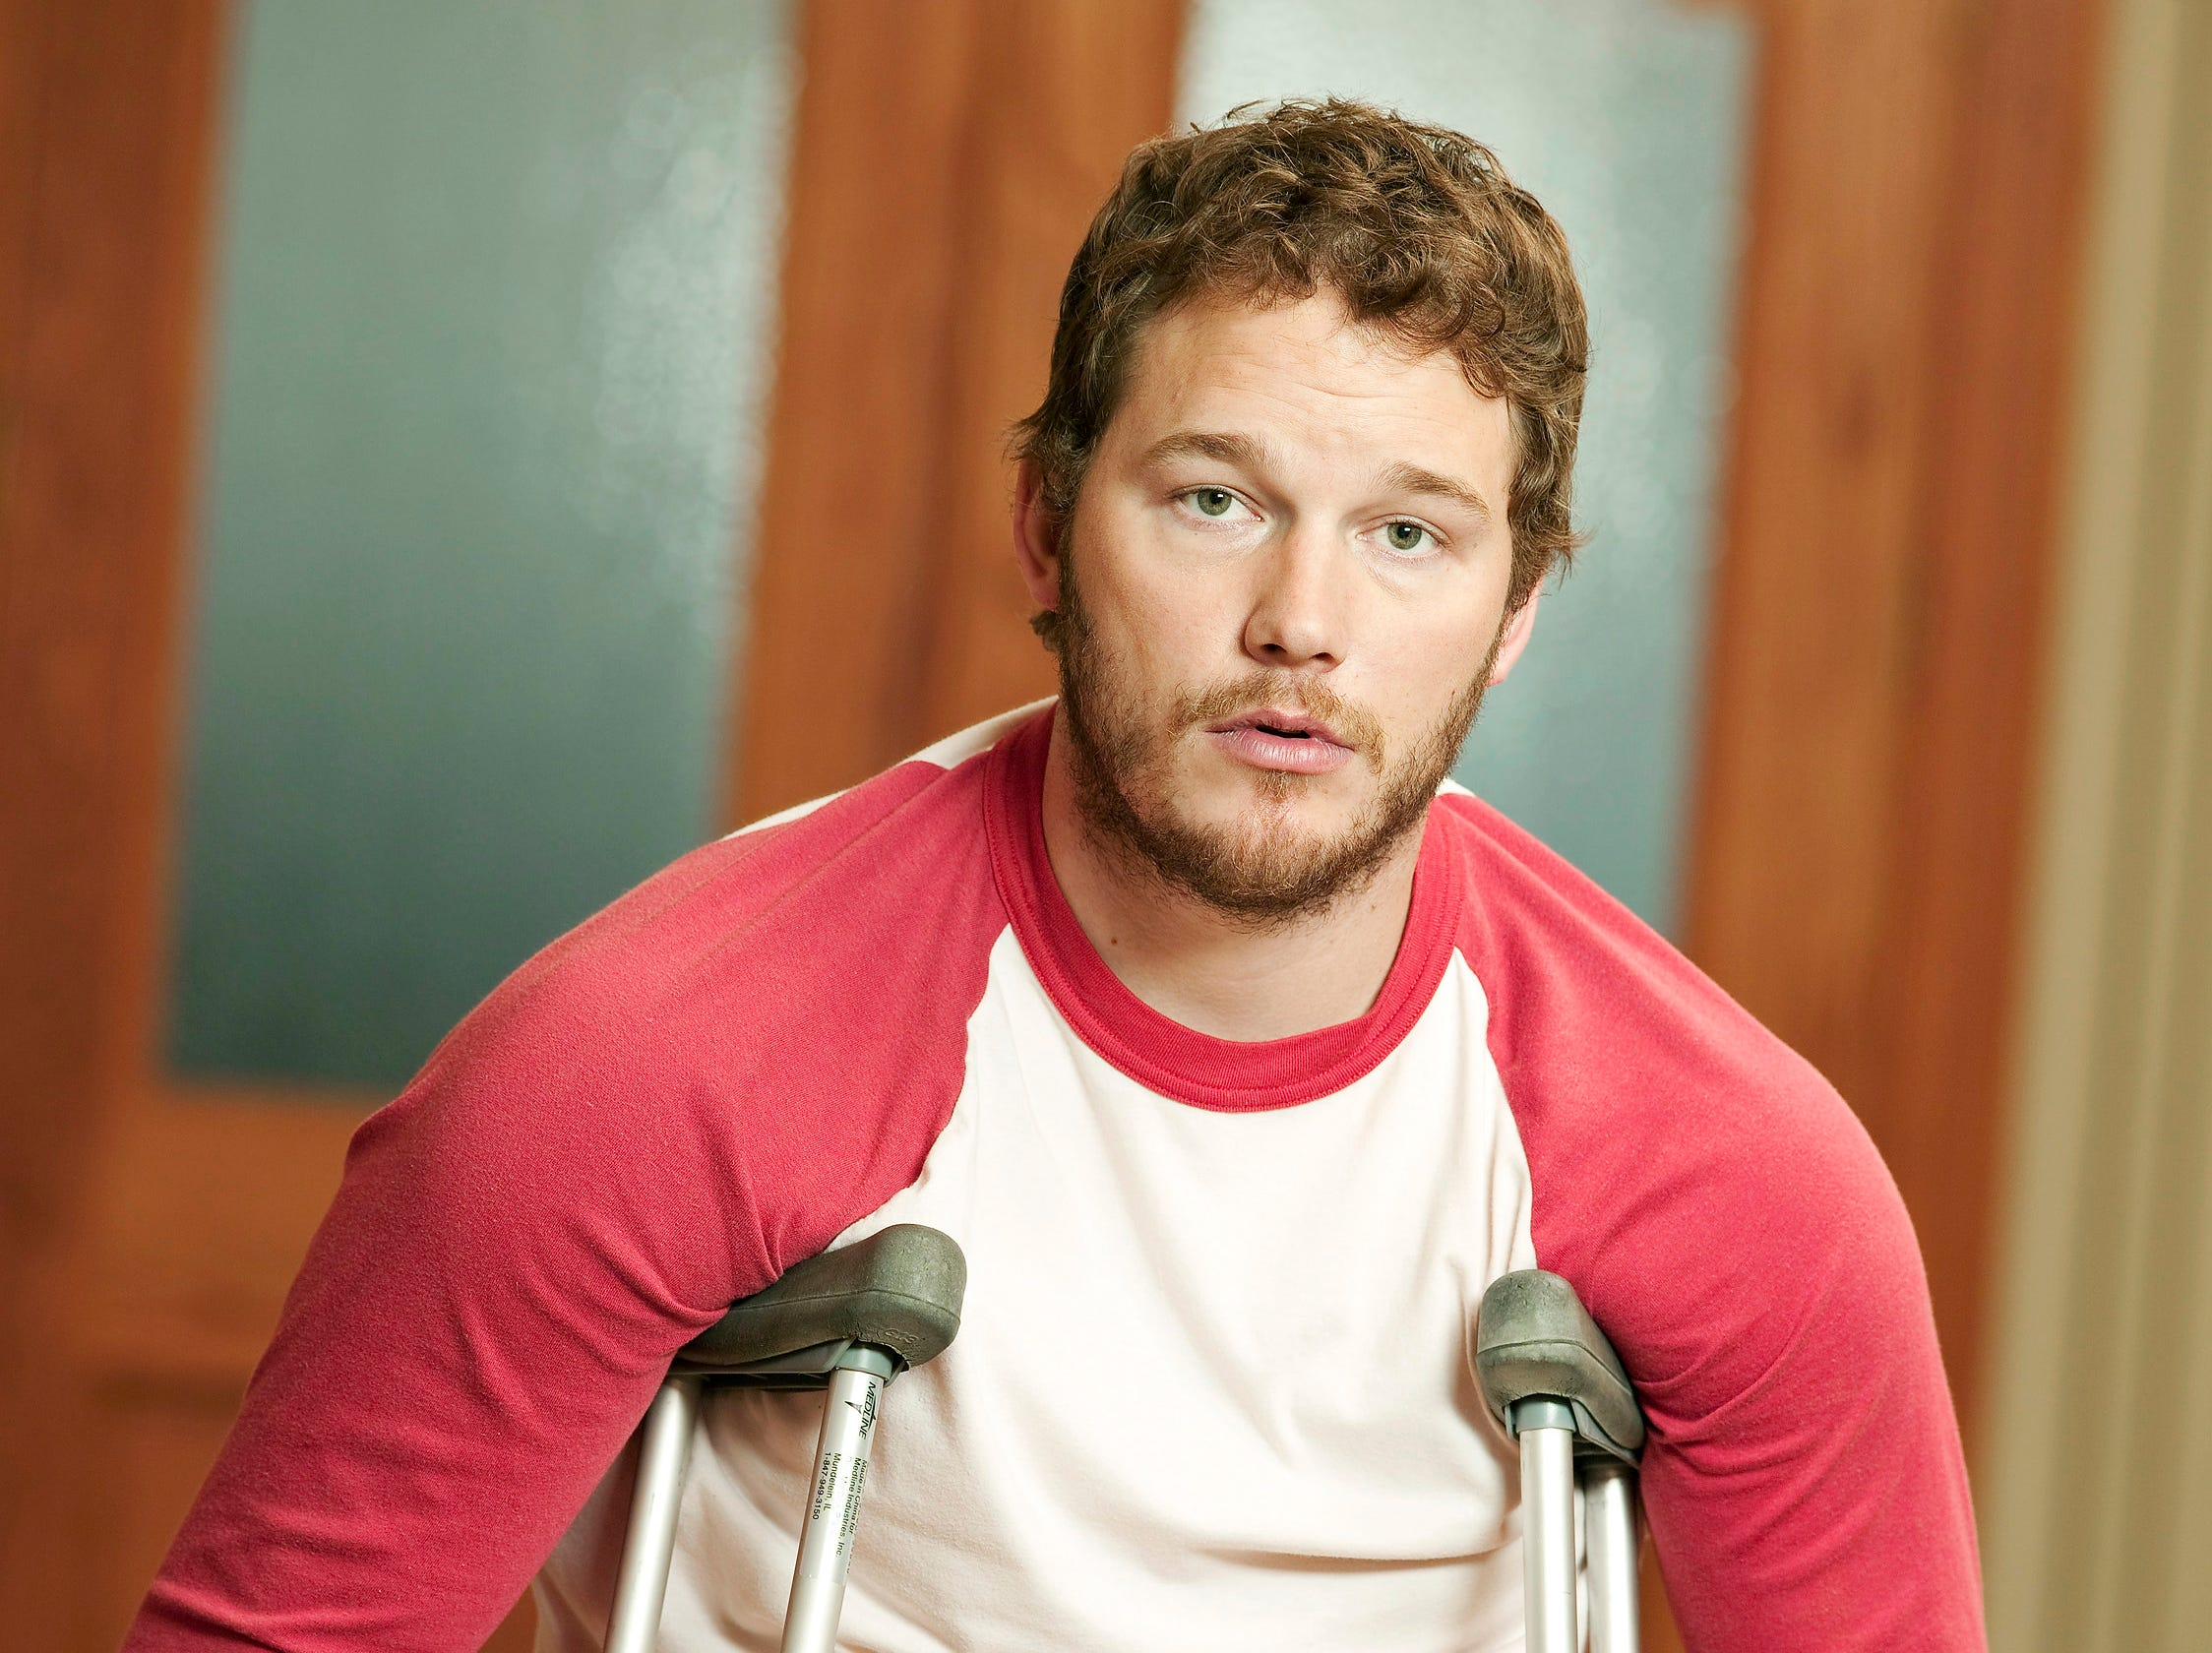 """Chris Pratt as Andy from the television program """"Parks and Recreation."""" CREDIT: Mitchell Haaseth, NBC ORG XMIT: Season:1 [Via MerlinFTP Drop]"""